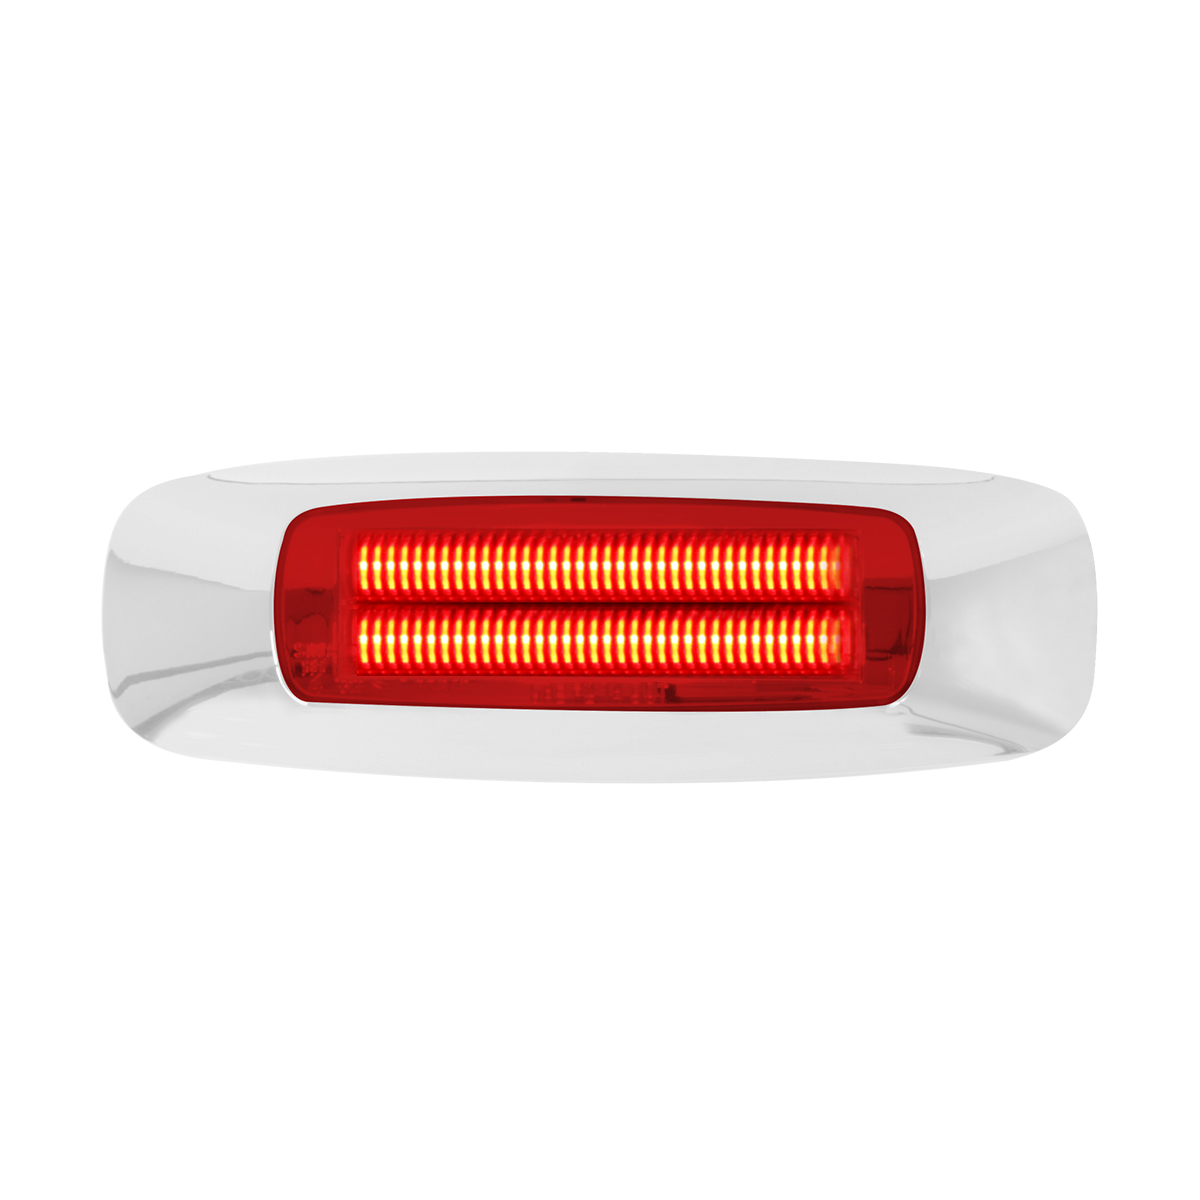 "74832 4-5/8"" Rectangular Prime LED Marker Light in Red/Red"